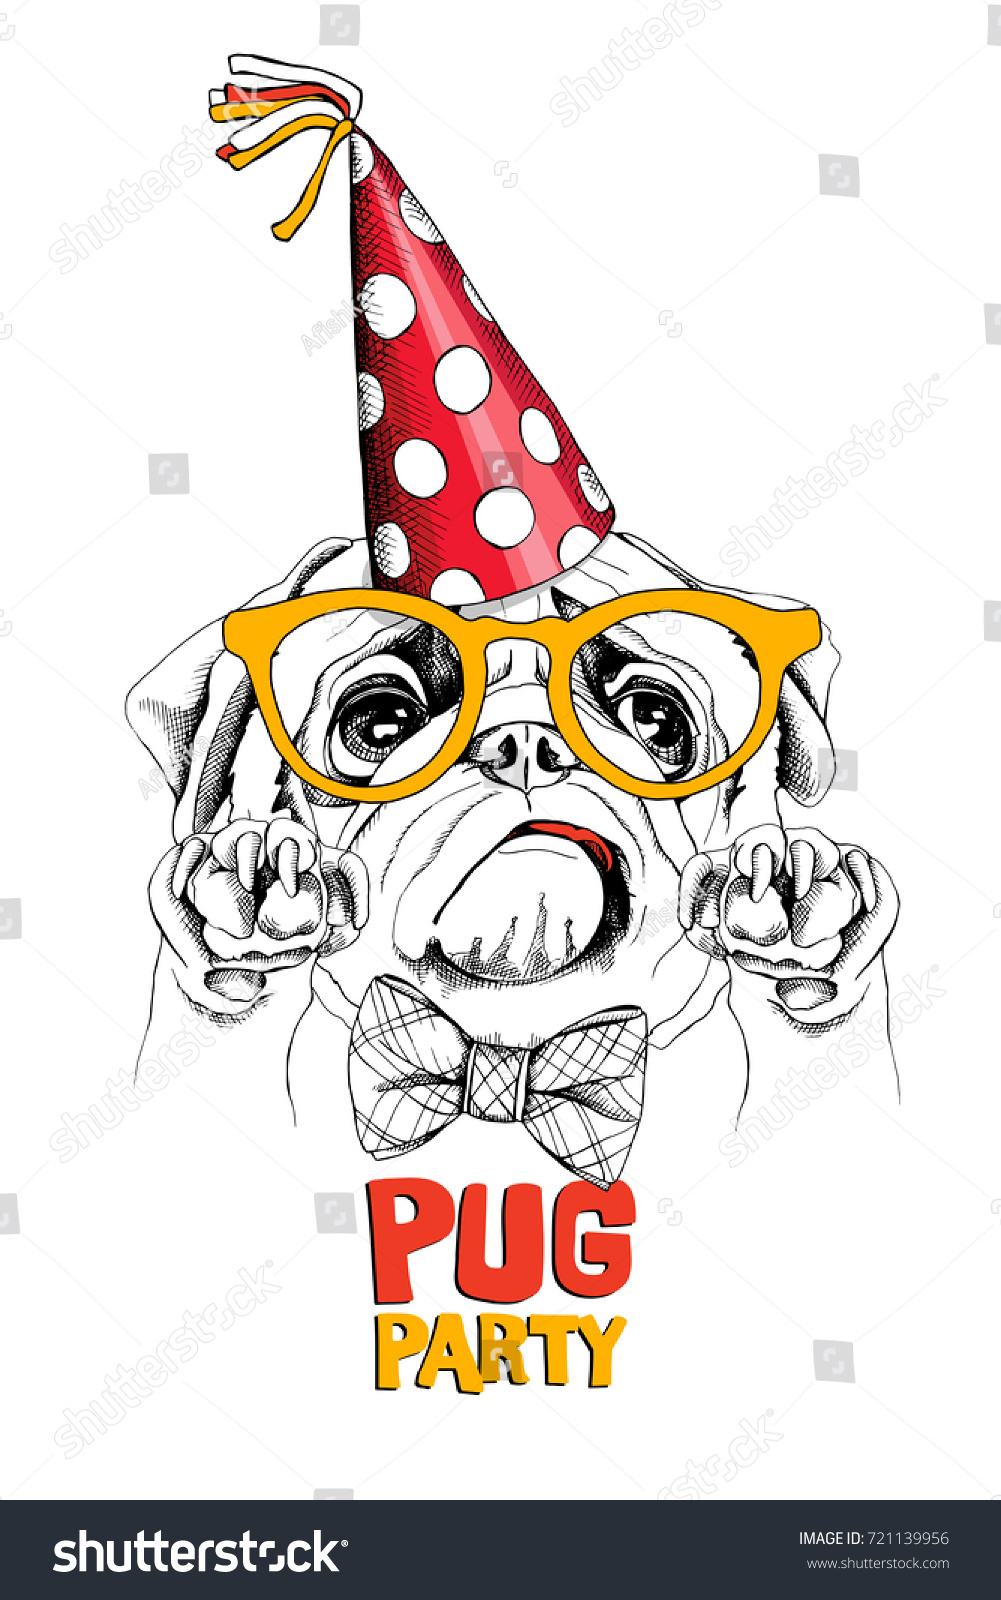 funny pug red polka dot party stock vector 721139956 shutterstock